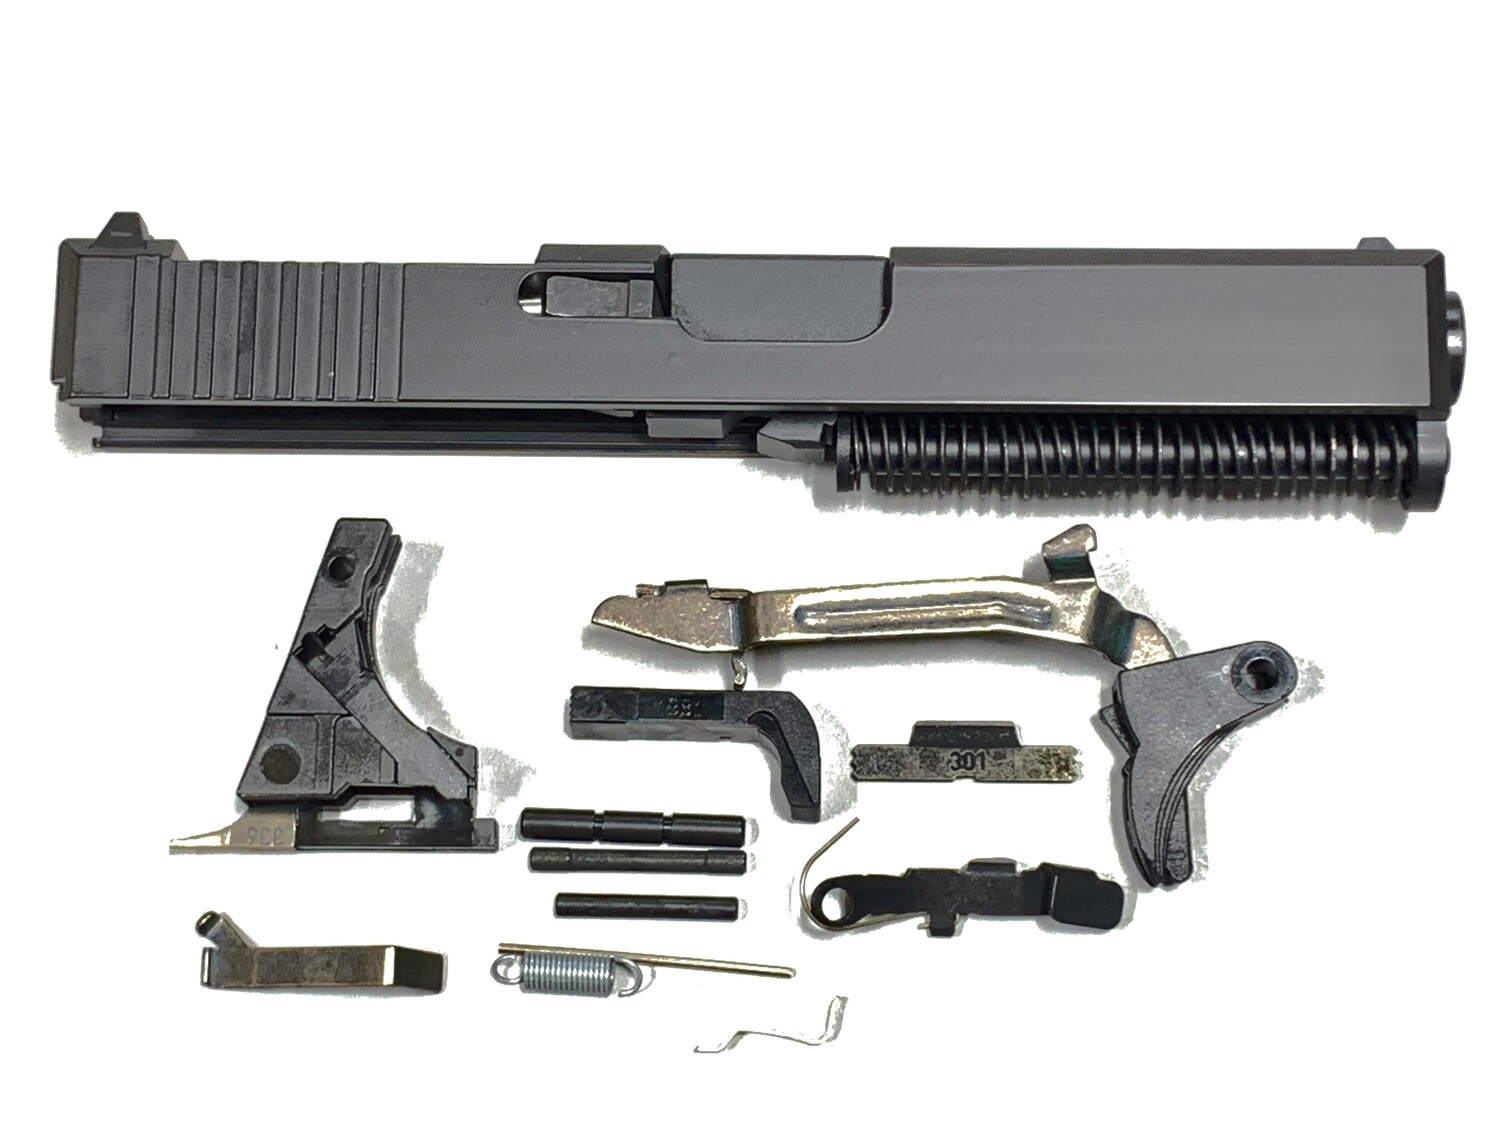 Glock 19 Complete Built Slide w/ Rear Serrations - RMR Trijicon Cut - Black - Comes With Glock OEM Lower Parts Kit - Free Shipping